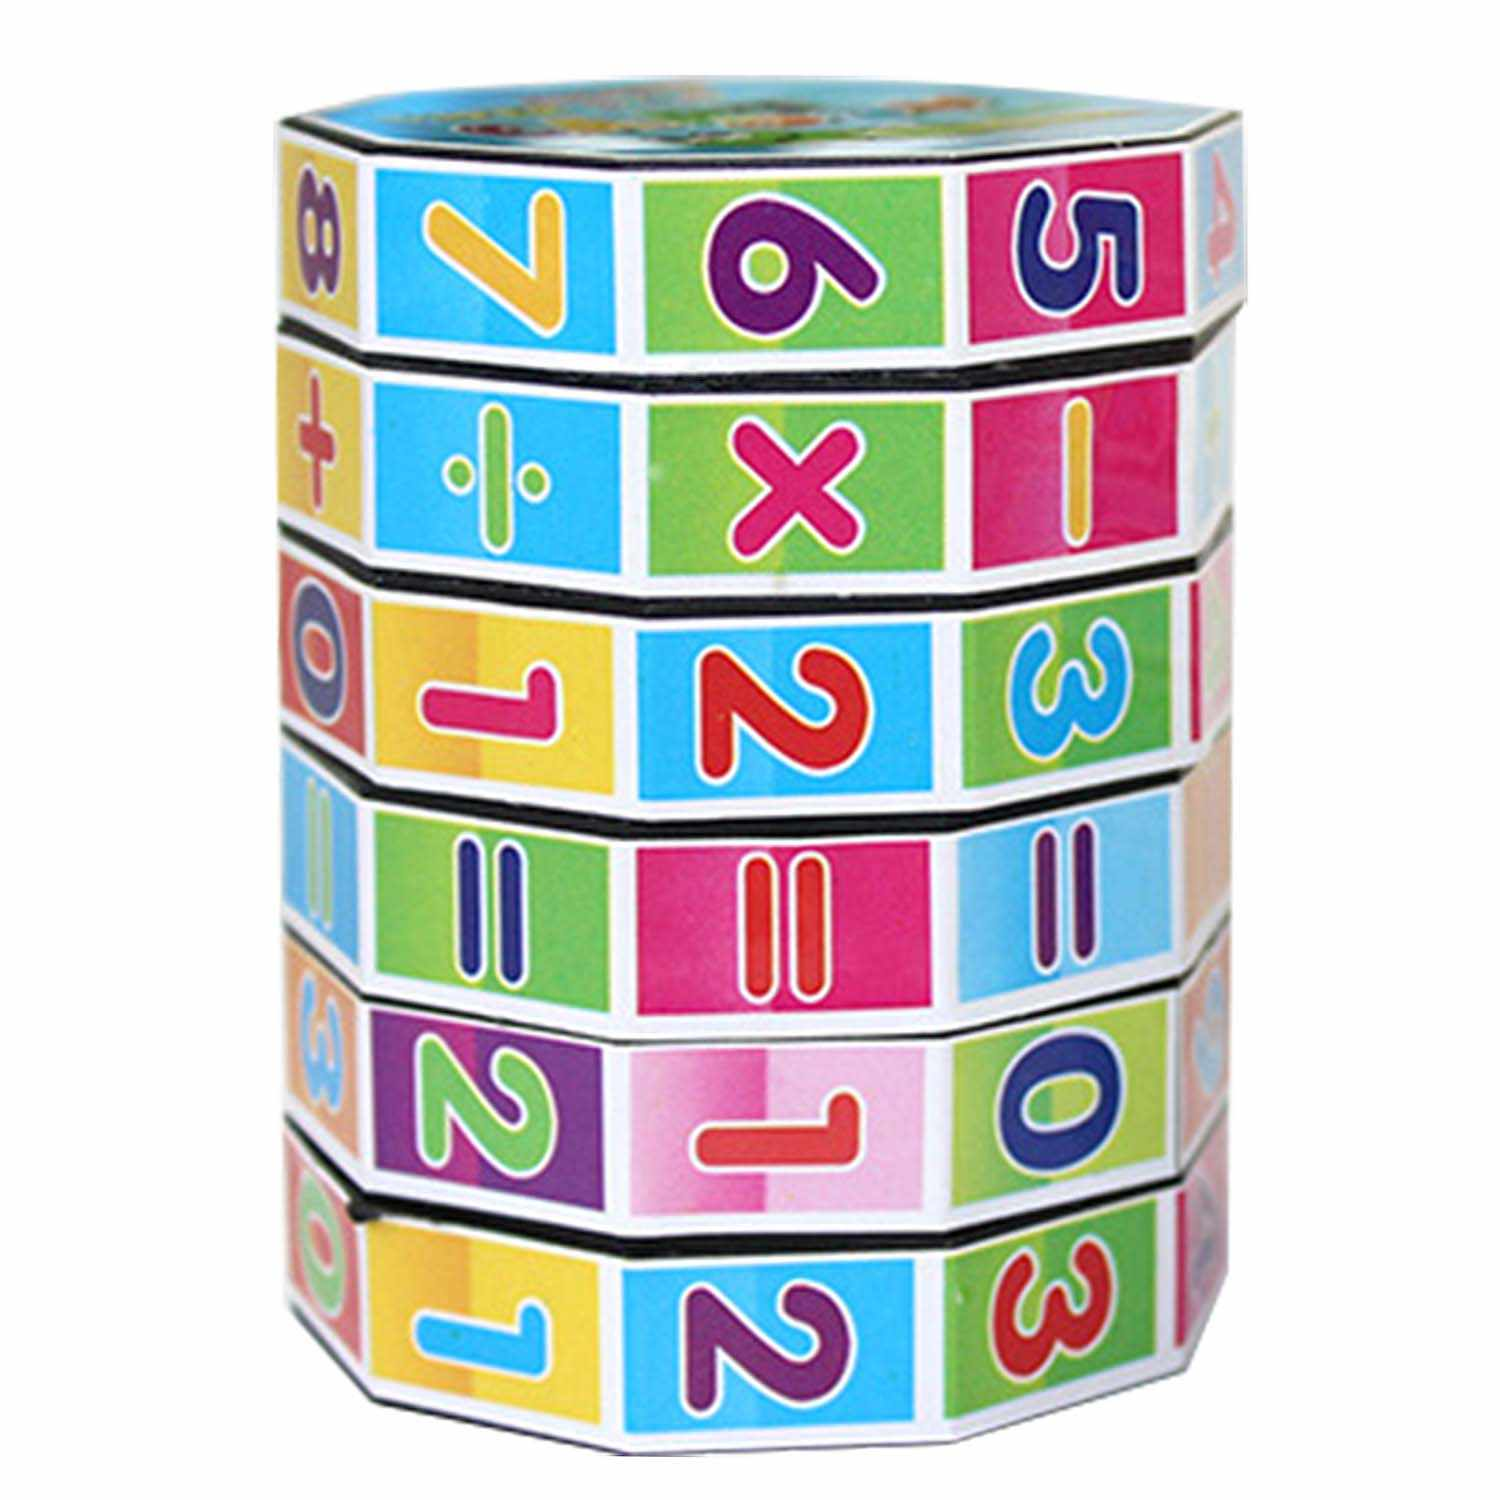 Cartoon Colorful 6 Layers Mathematics Numbers Cube Sliding Puzzle Cube  Numbers and Signs Fun Education Learning Math Toy.